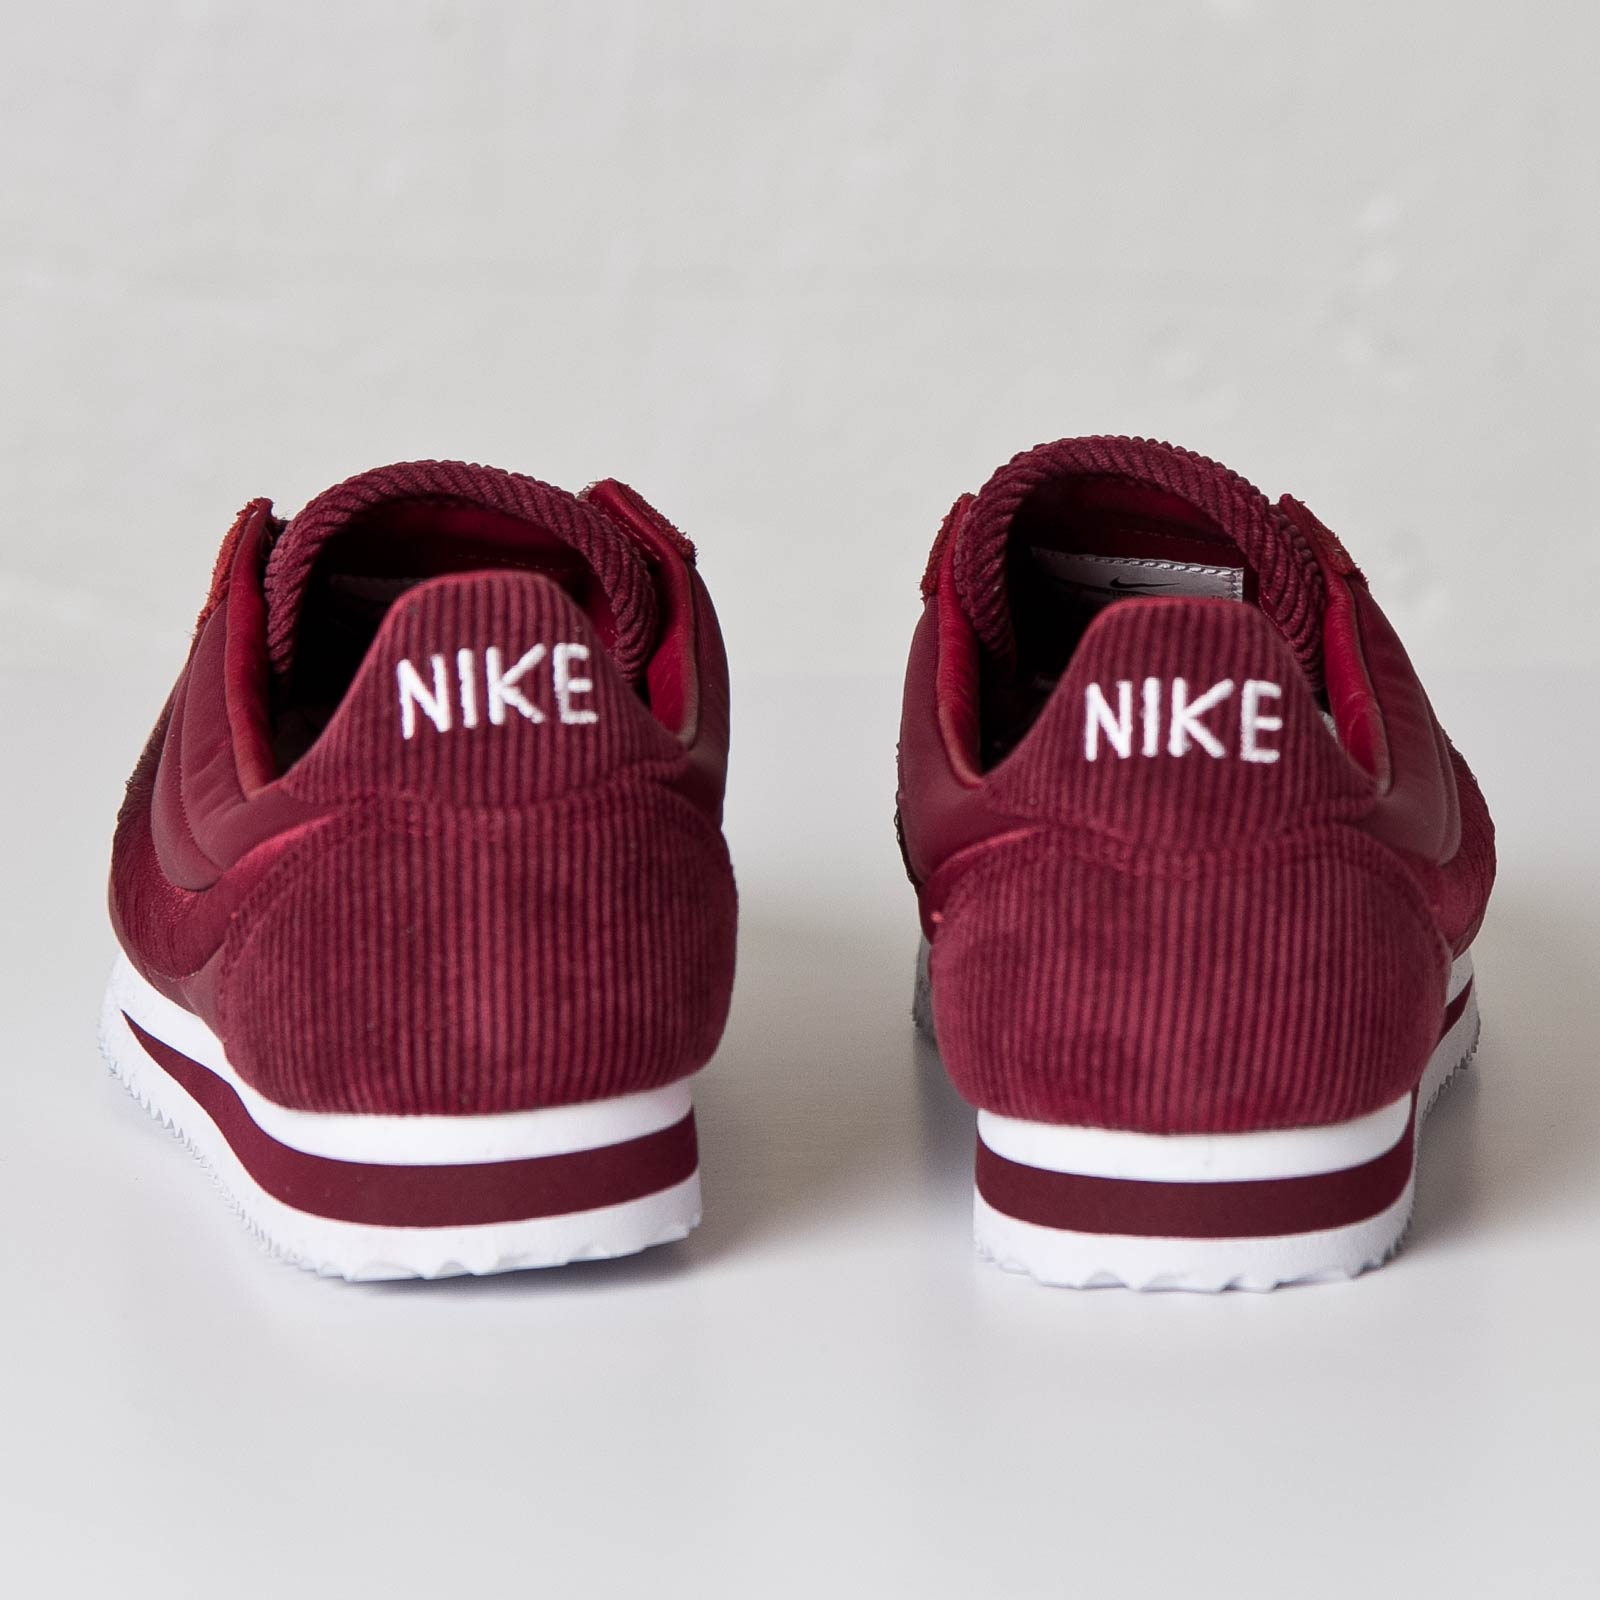 best website 4ec24 b98c8 Nike Classic Cortez SP - 789594-661 - Sneakersnstuff ...